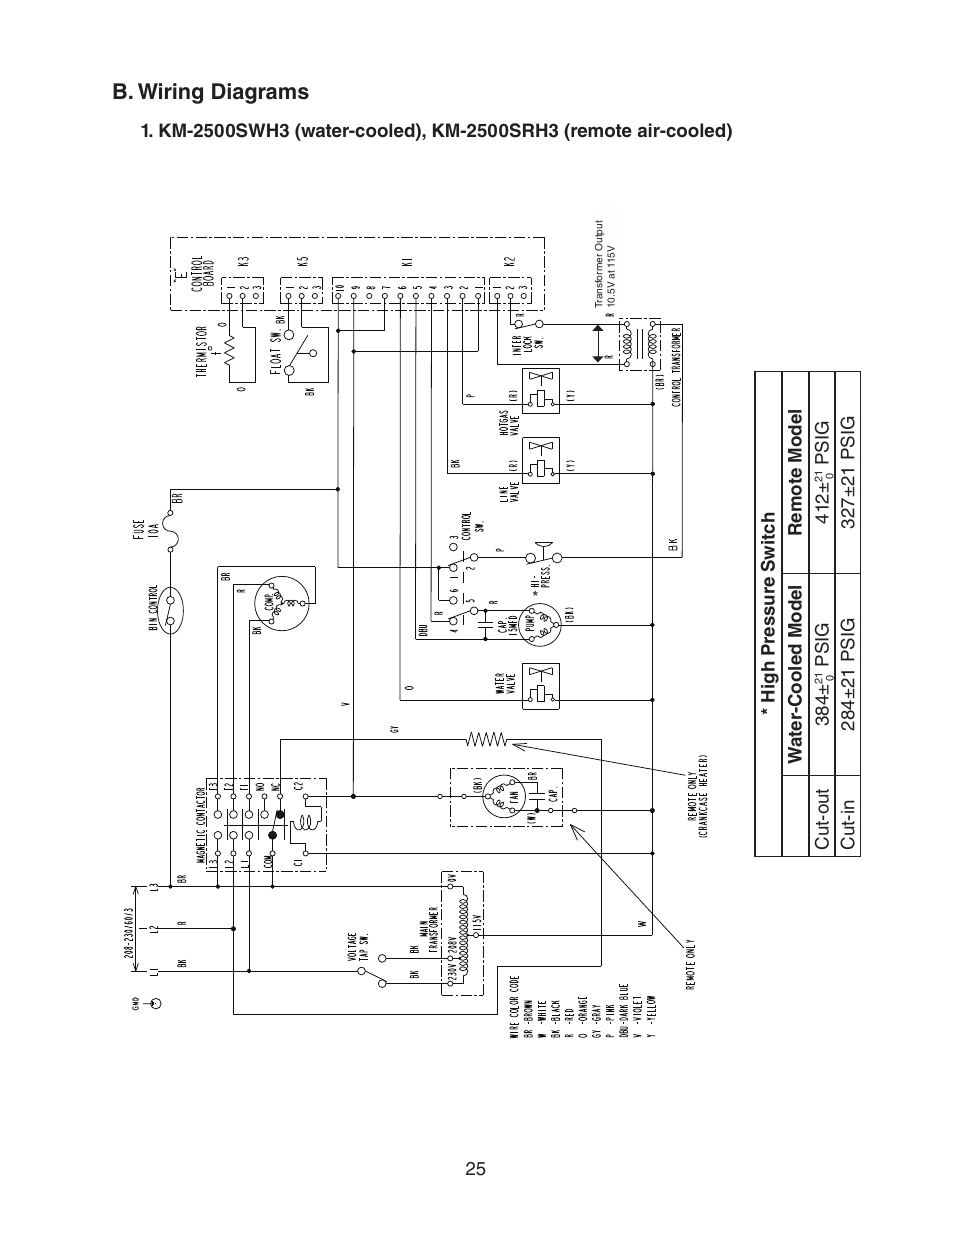 hight resolution of b wiring diagrams hoshizaki km 2500swh3 user manual page 25 61hoshizaki wiring diagrams 7